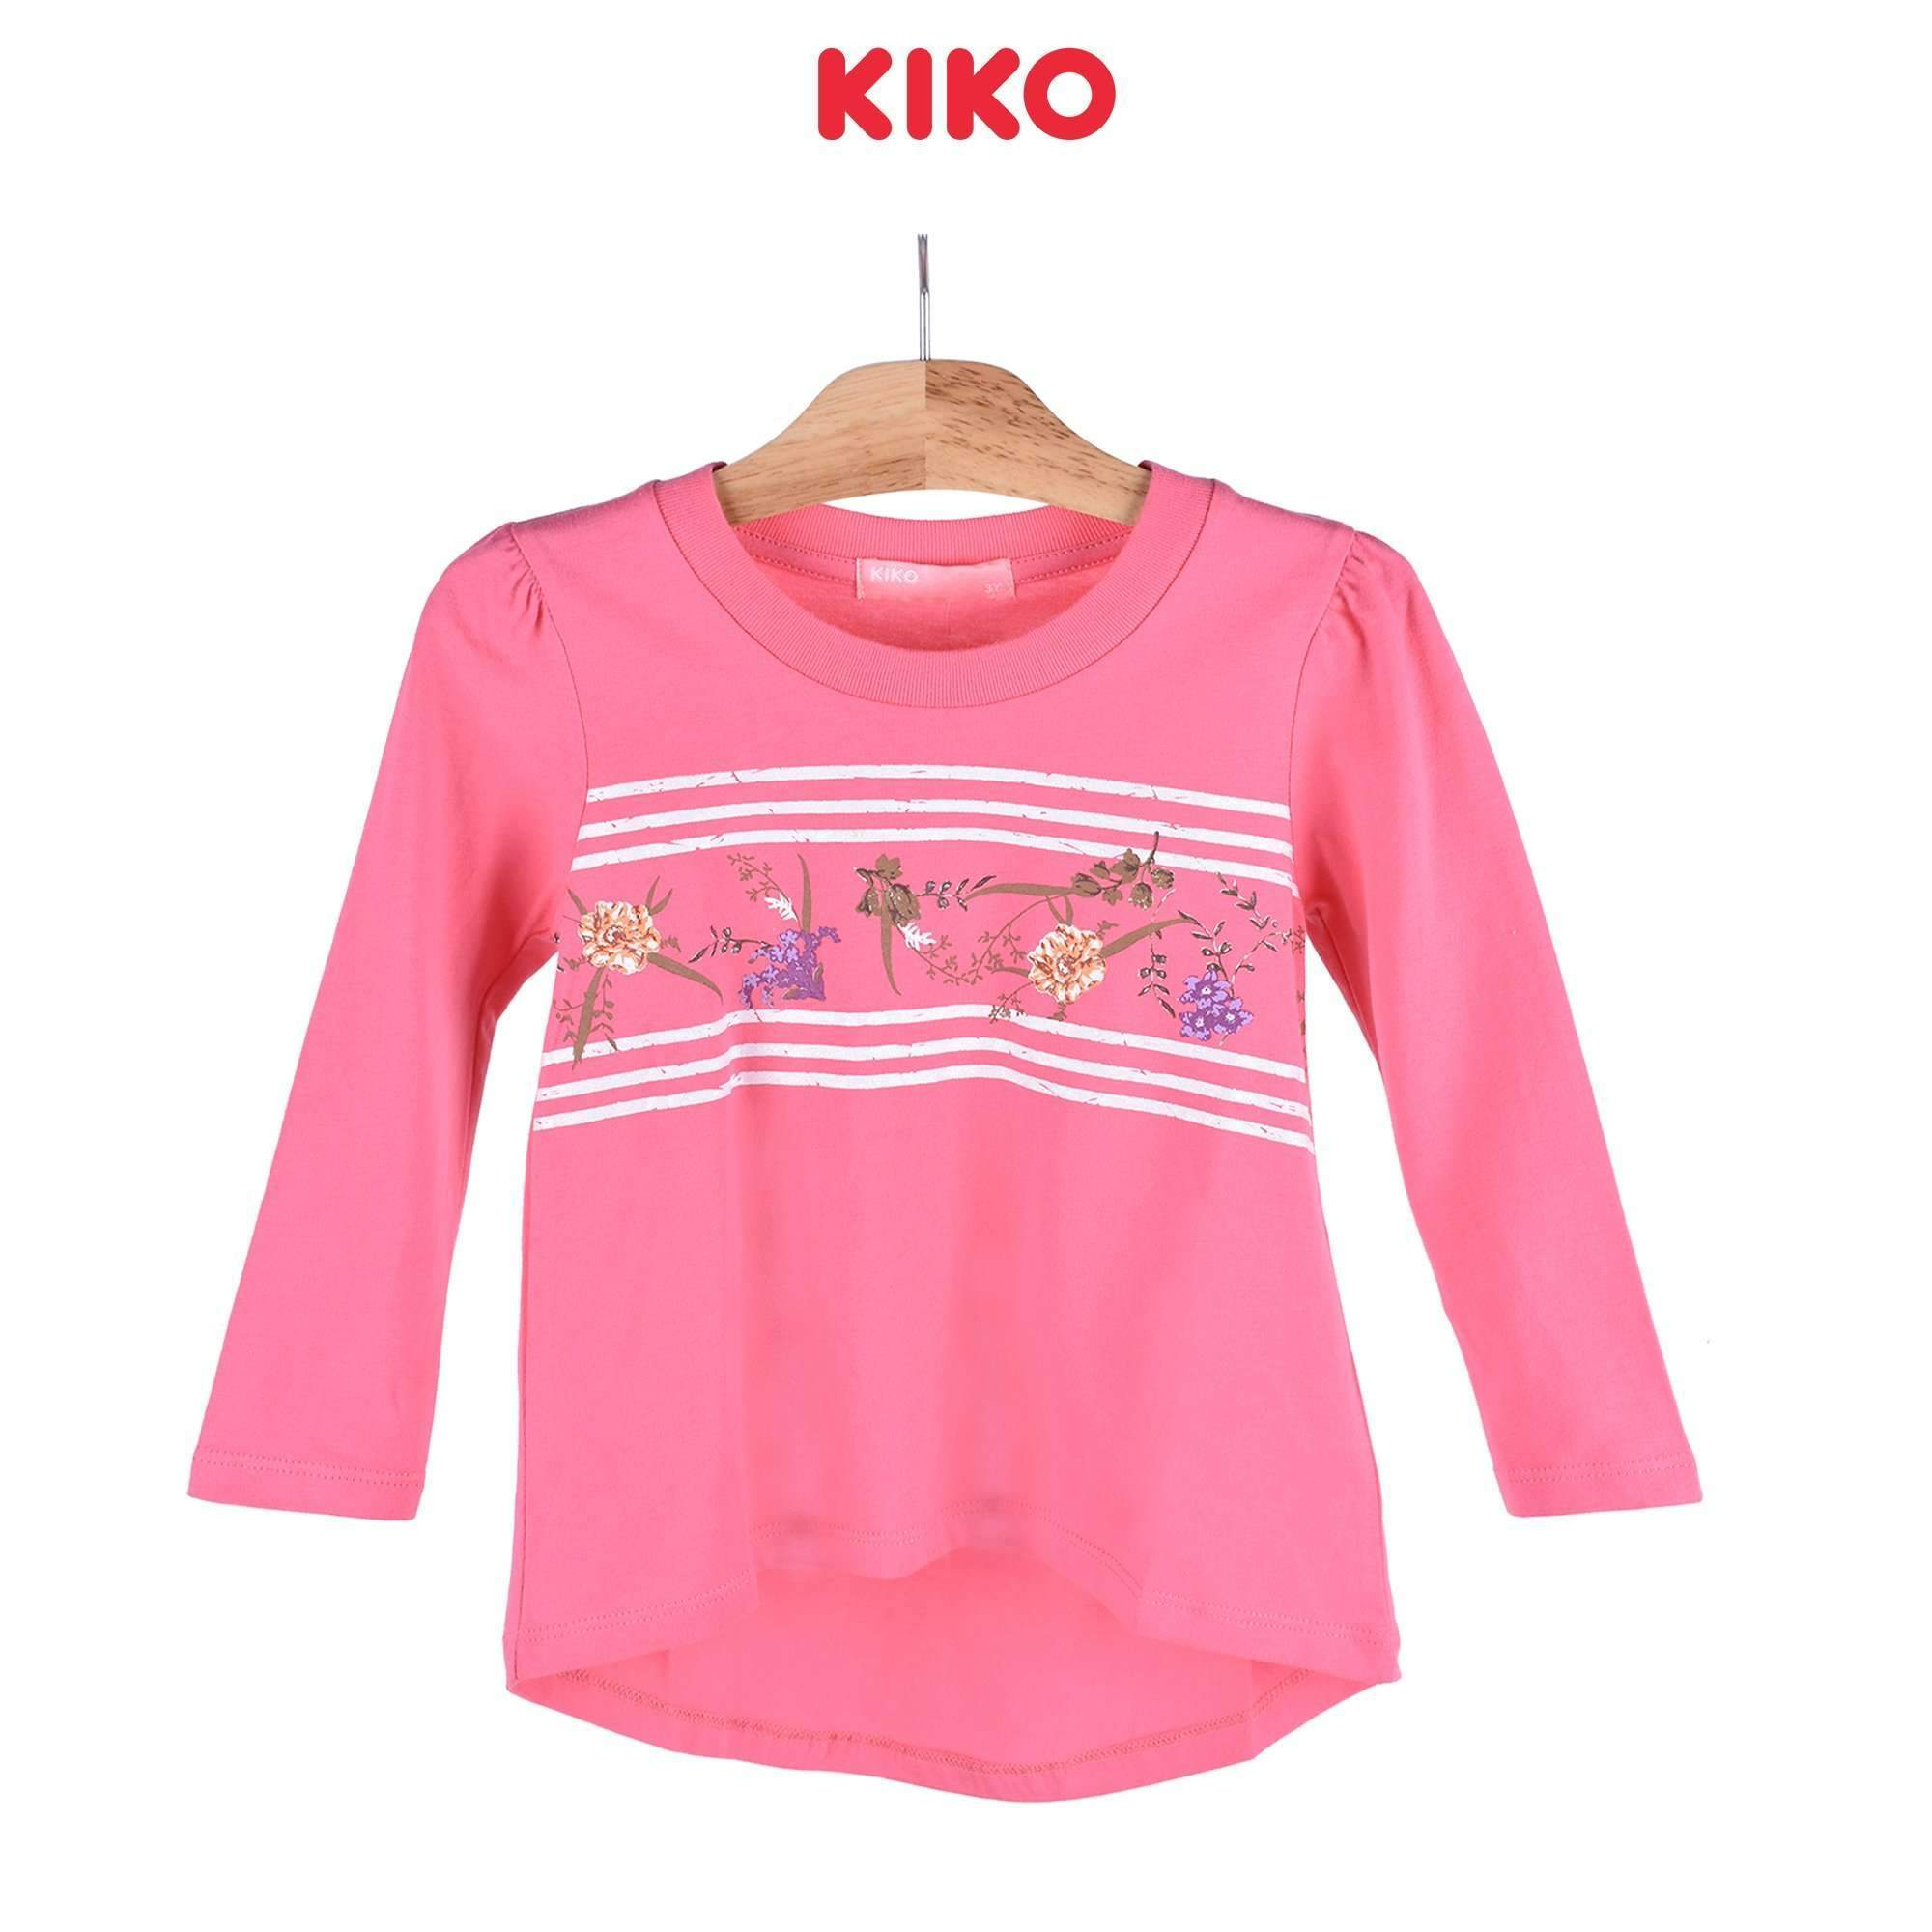 KIKO Girl Long Sleeve Tee 126049-131 : Buy KIKO online at CMG.MY